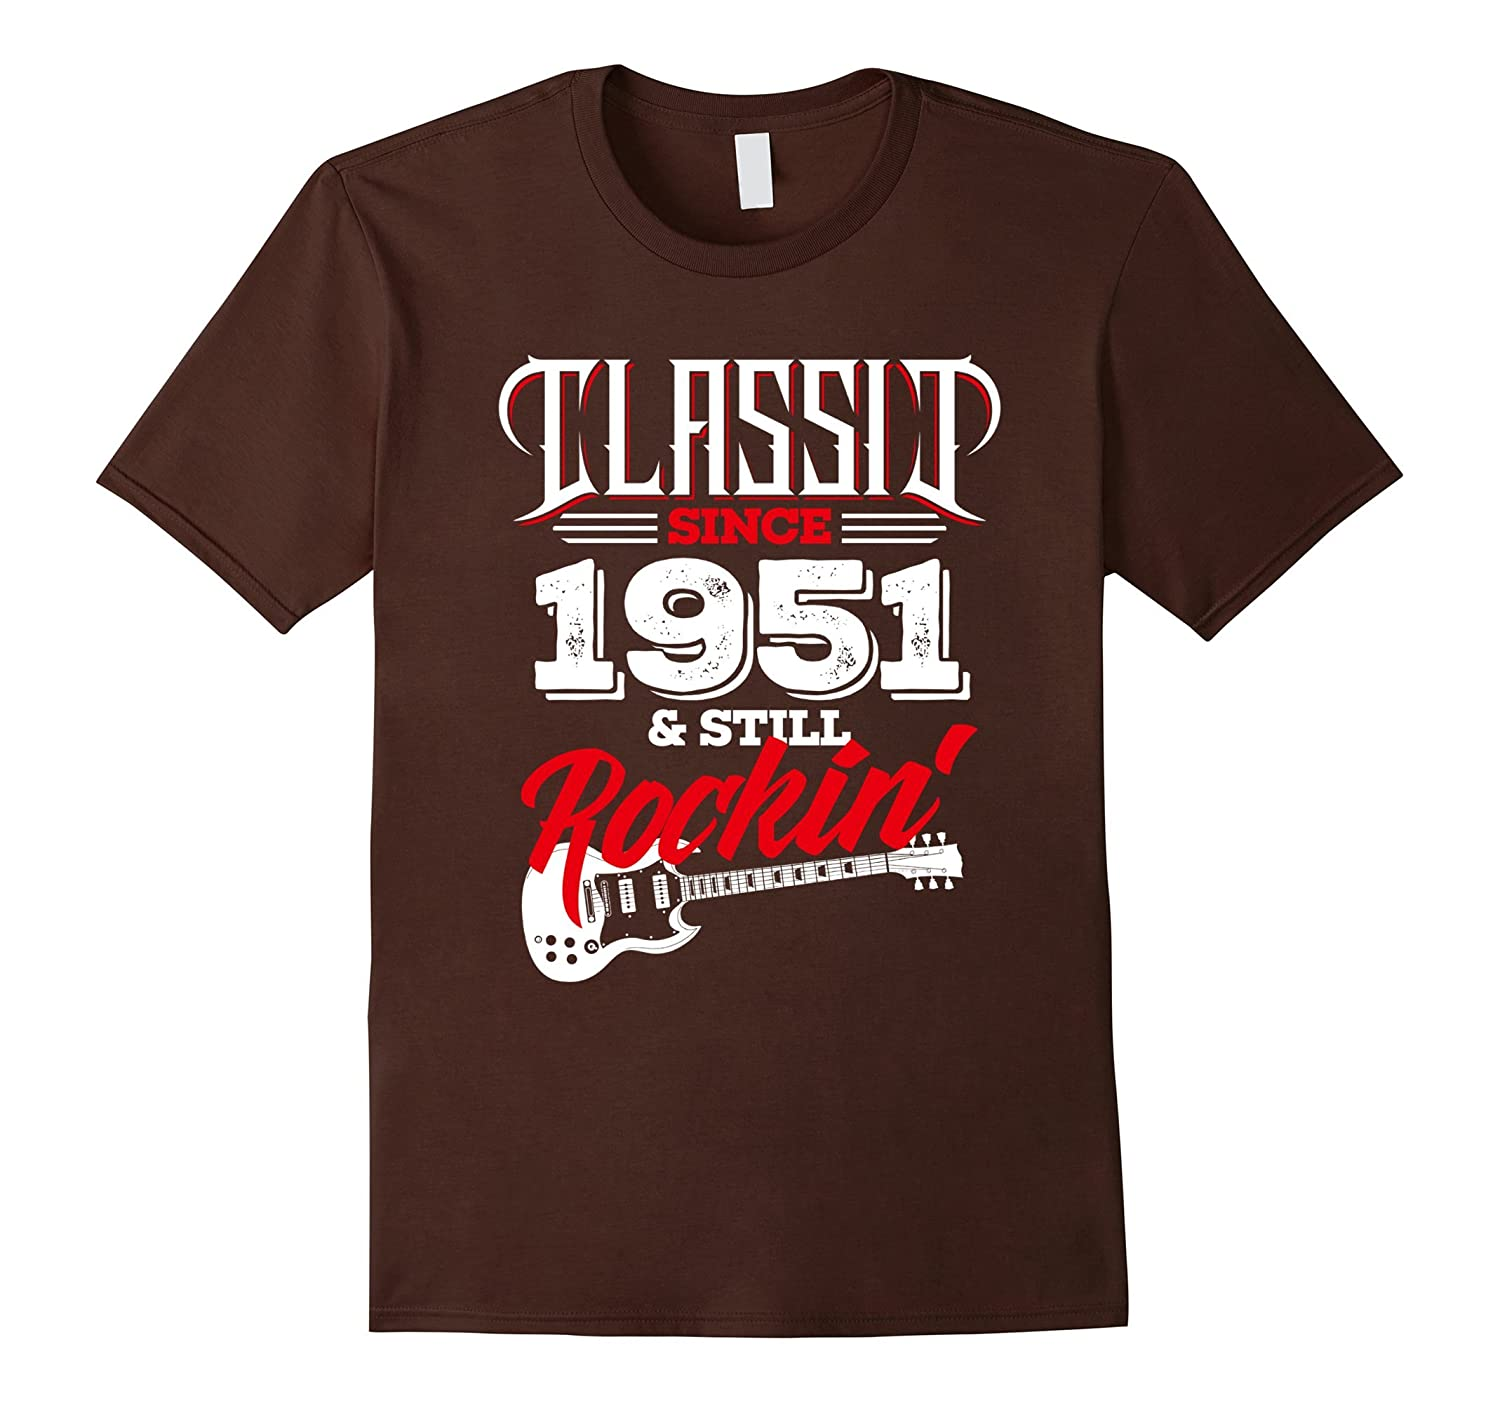 66 Years Old Gifts - 66th Birthday Classic Since 1951 TShirt-T-Shirt